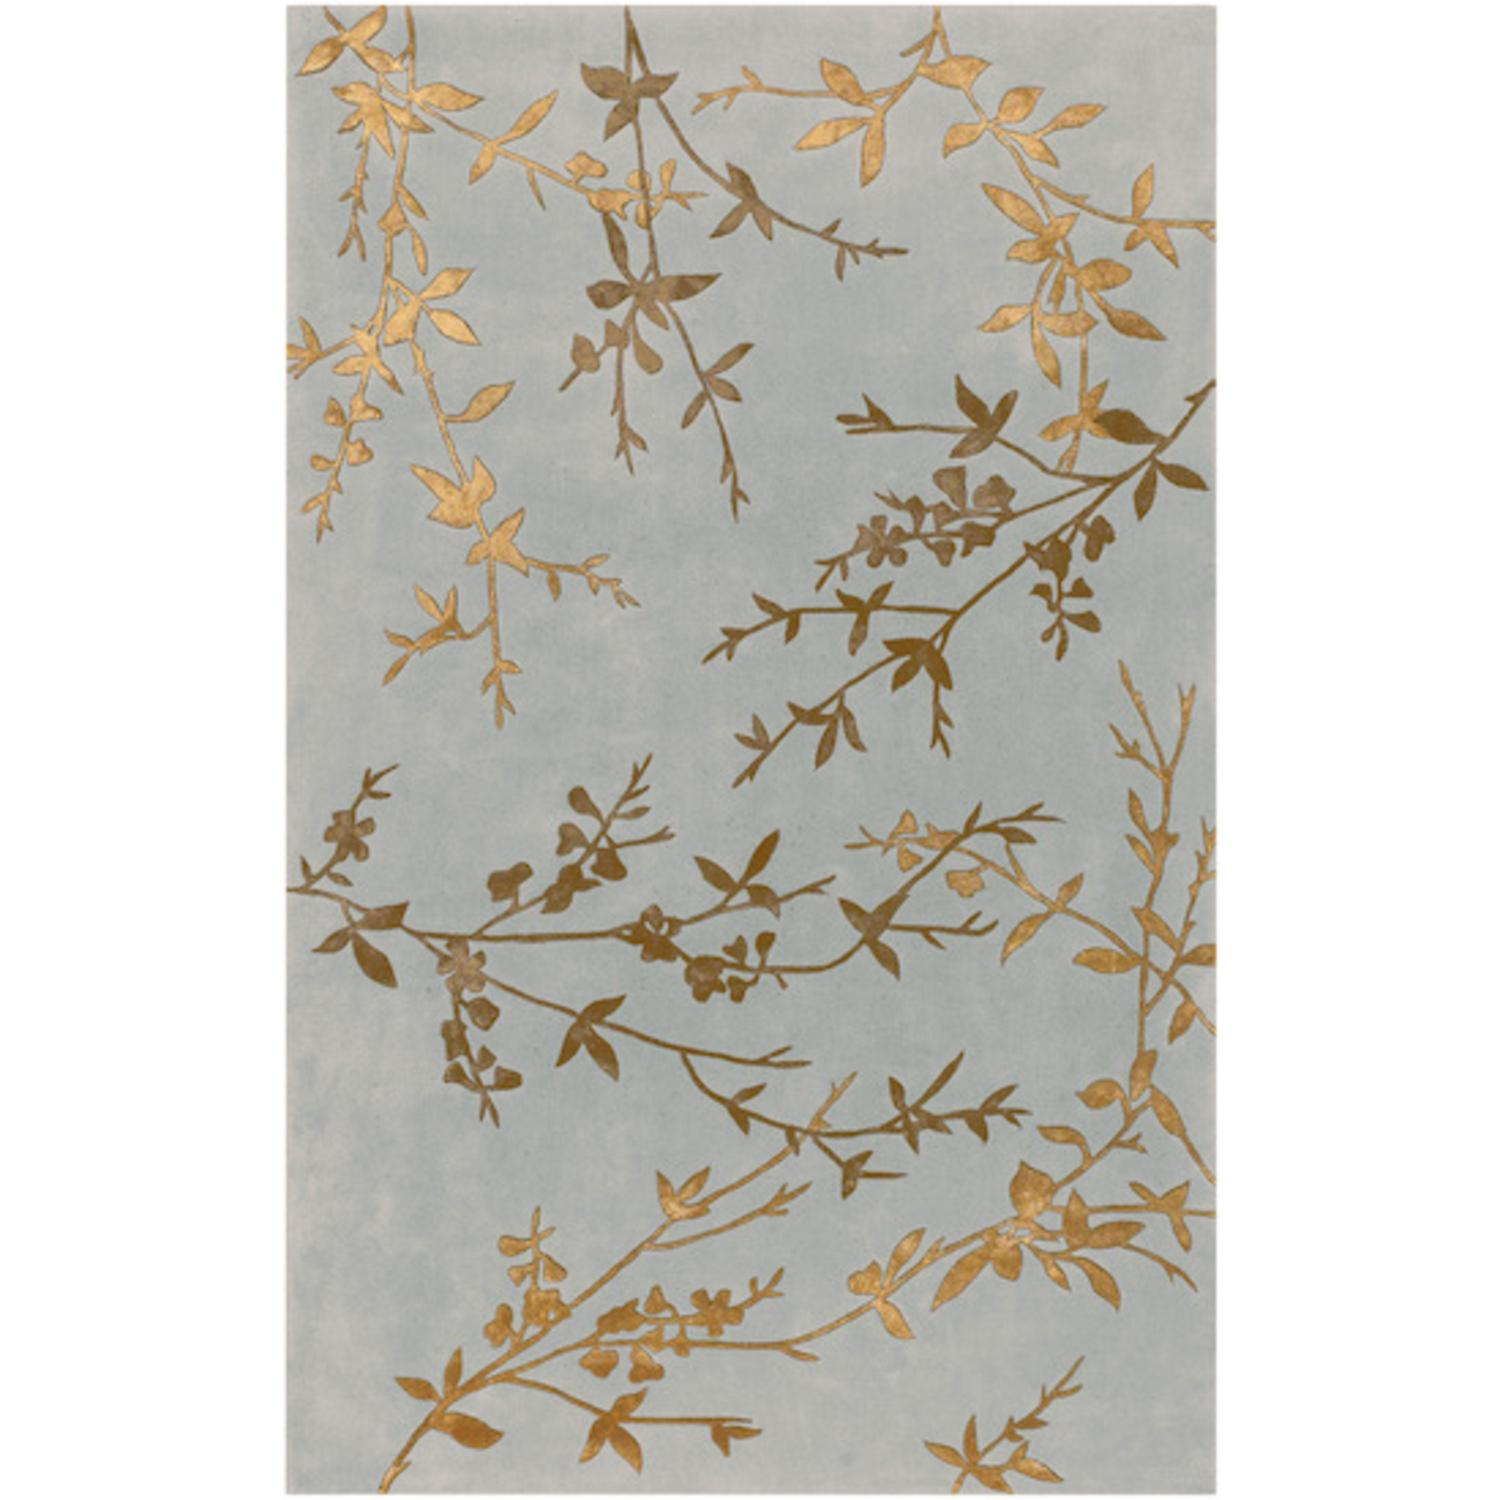 2' x 3' Asian Winter Branch Slate Gray and Gold Wool Area Throw Rug